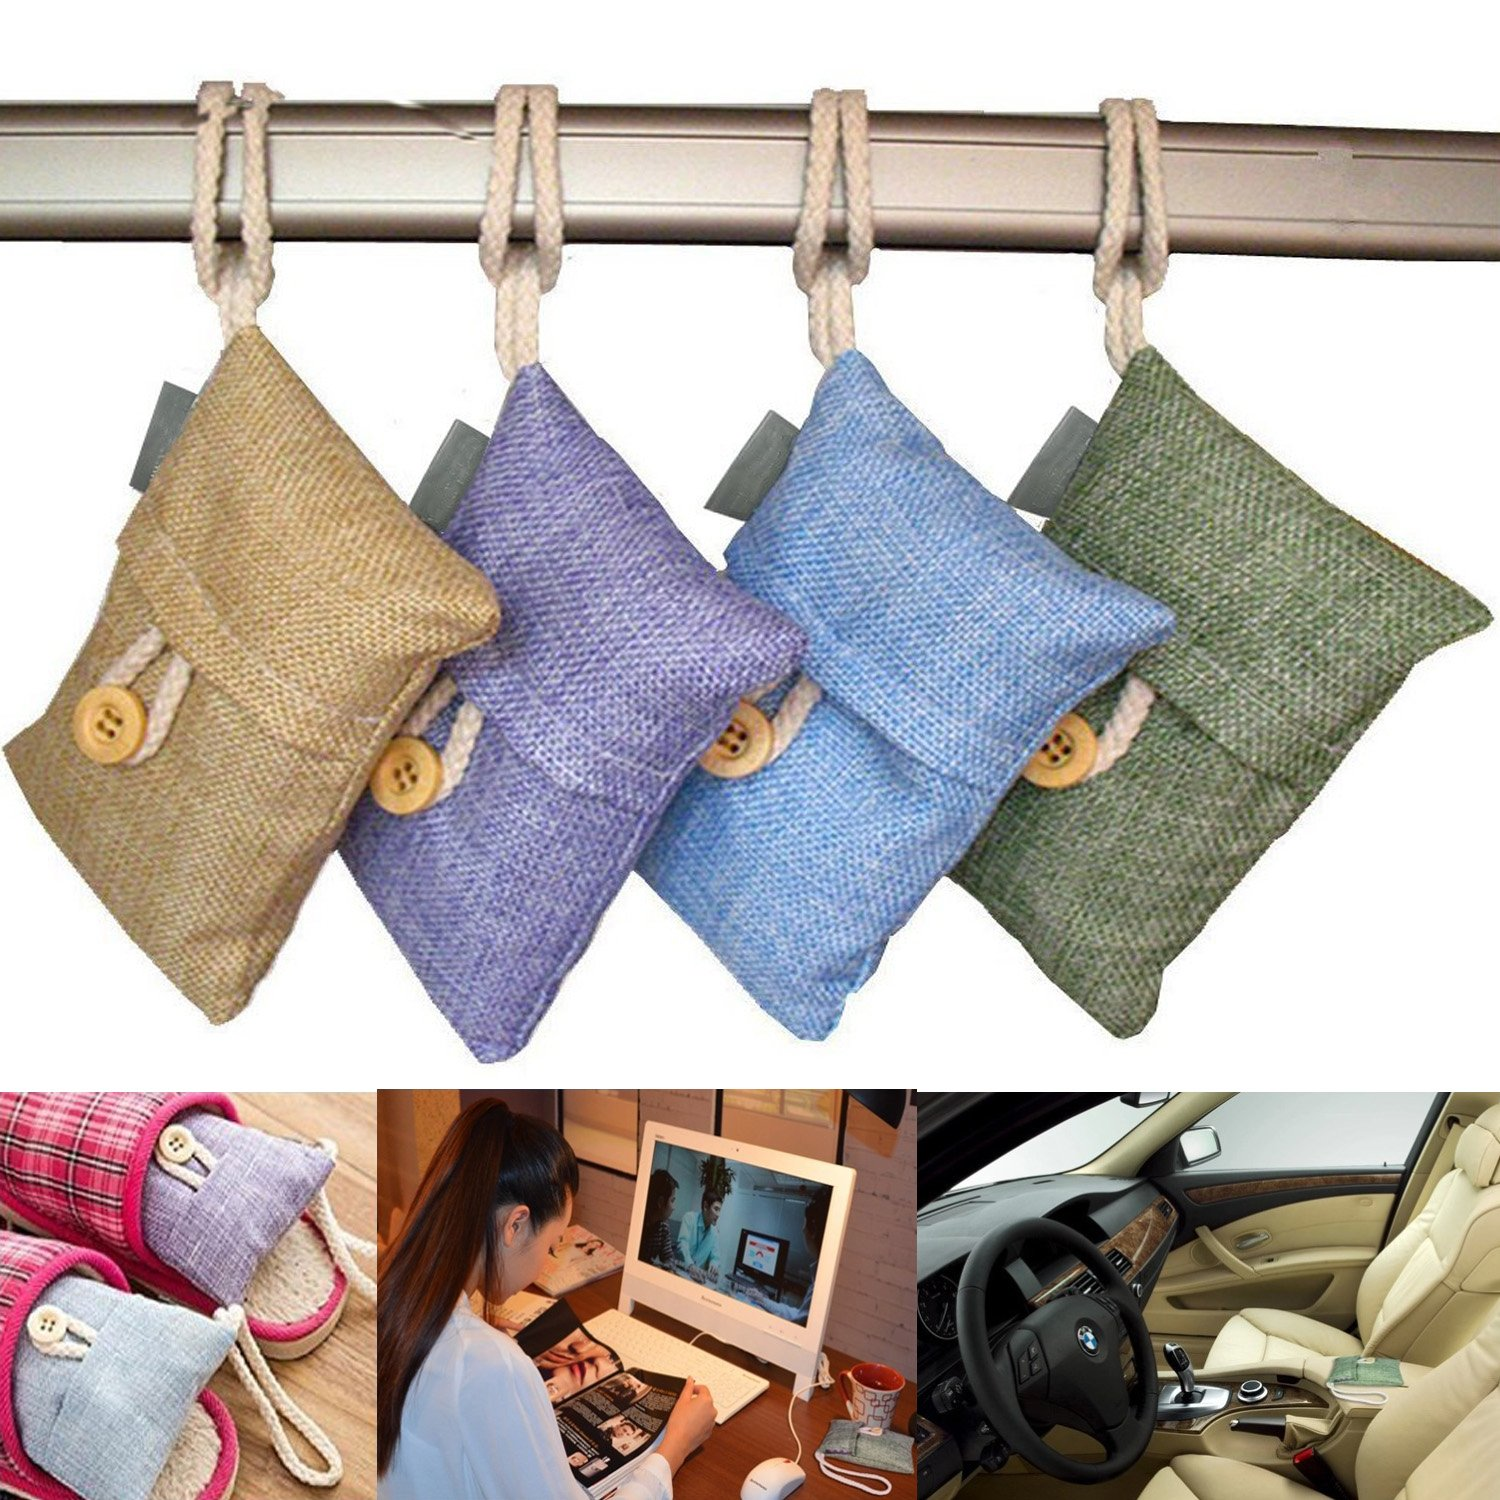 Allucky Air Purifying Bamboo Charcoal Bags Odour Absorber Air Freshener Hanging Pouches for Shoes, Home,Kitchen and Cars Set of 4